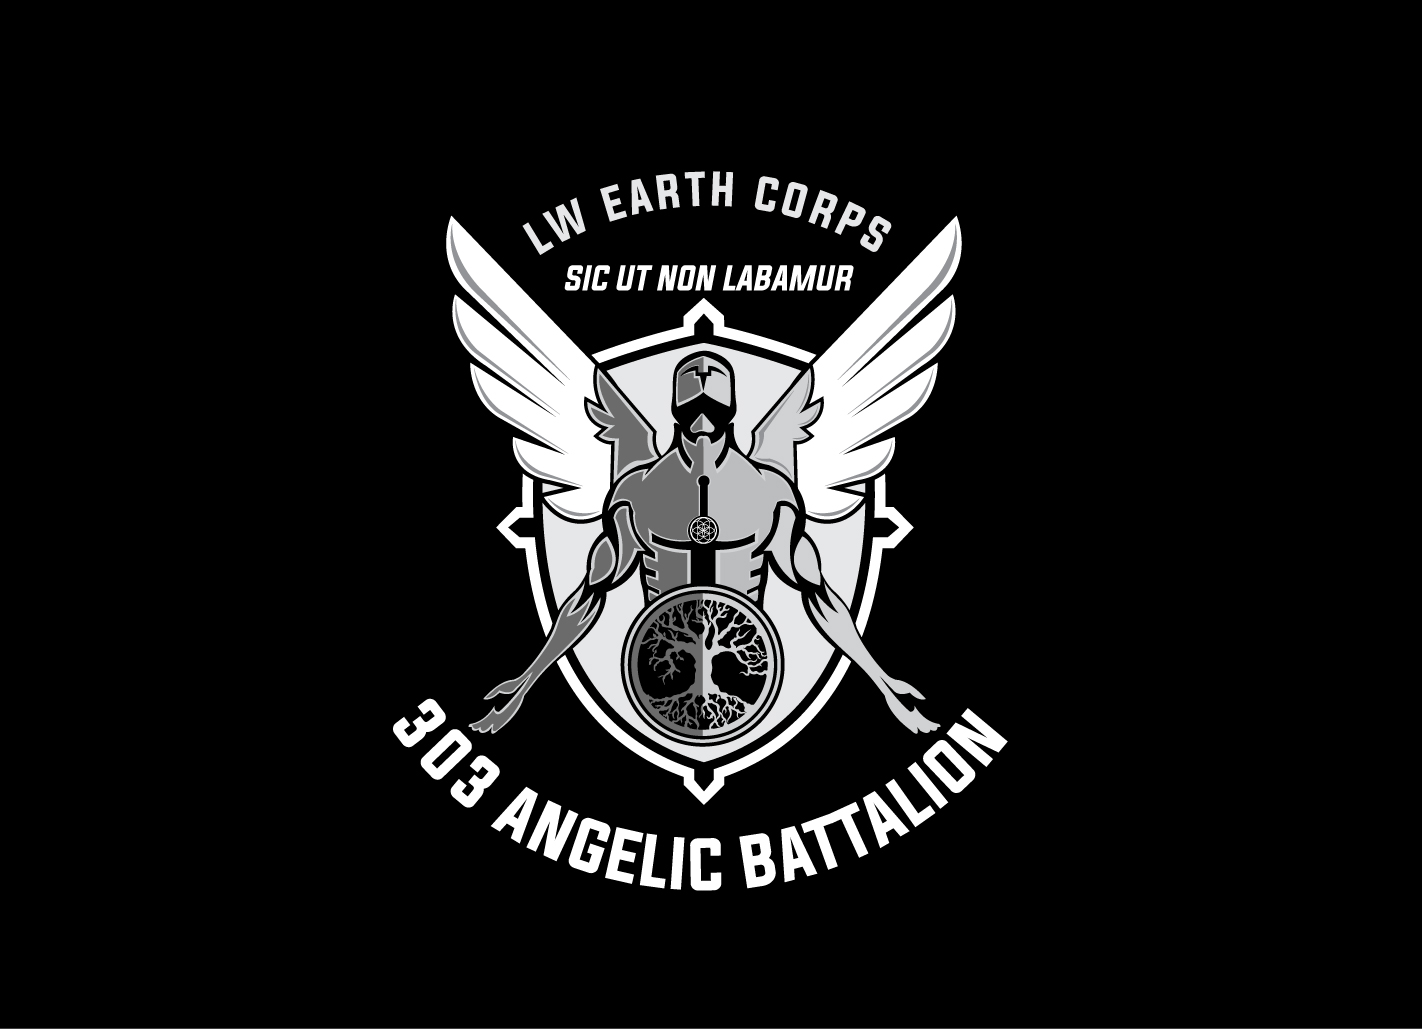 serious professional logo design for 303 angelic battalion lw earth